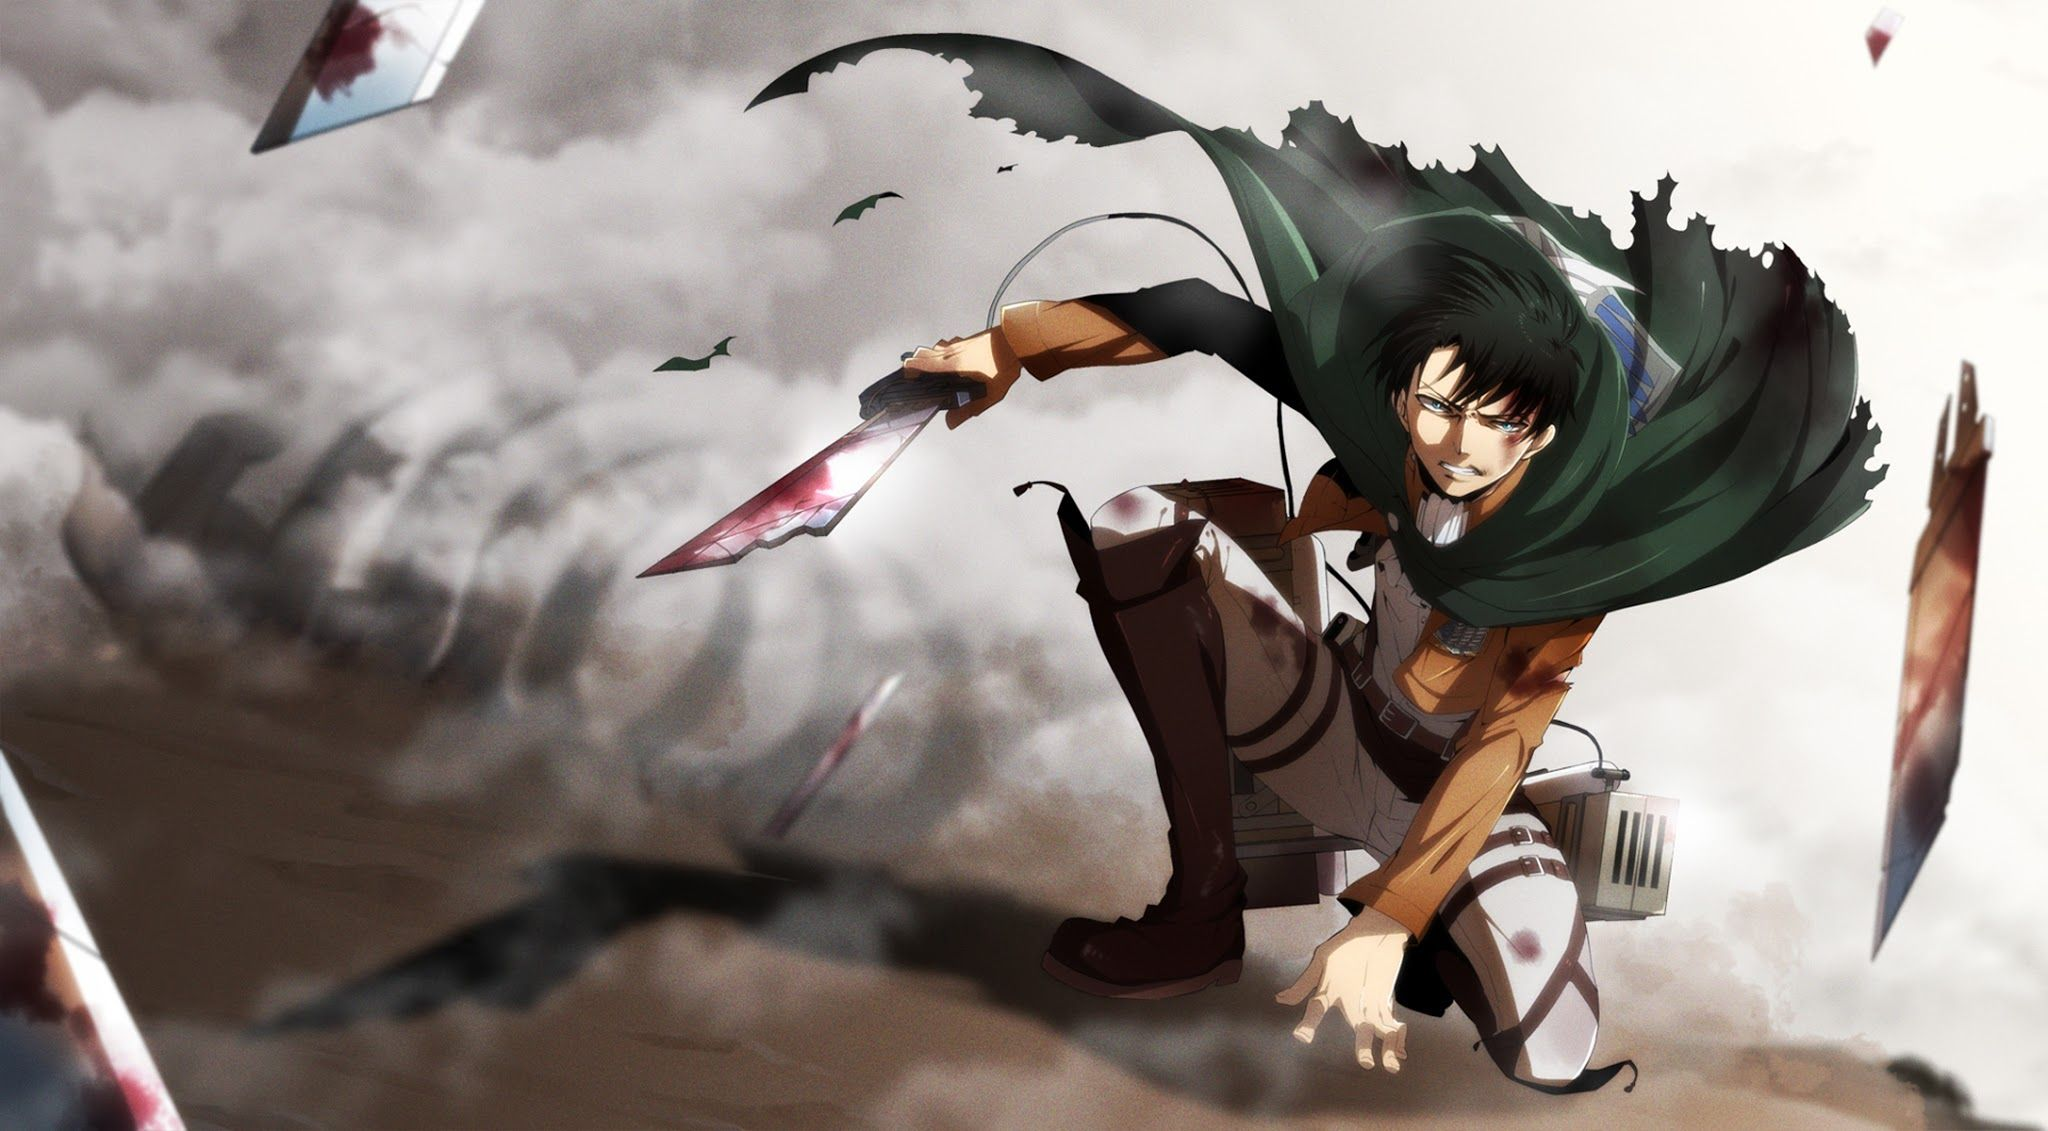 levi rivaille wallpaper Attack on Titans! Pinterest